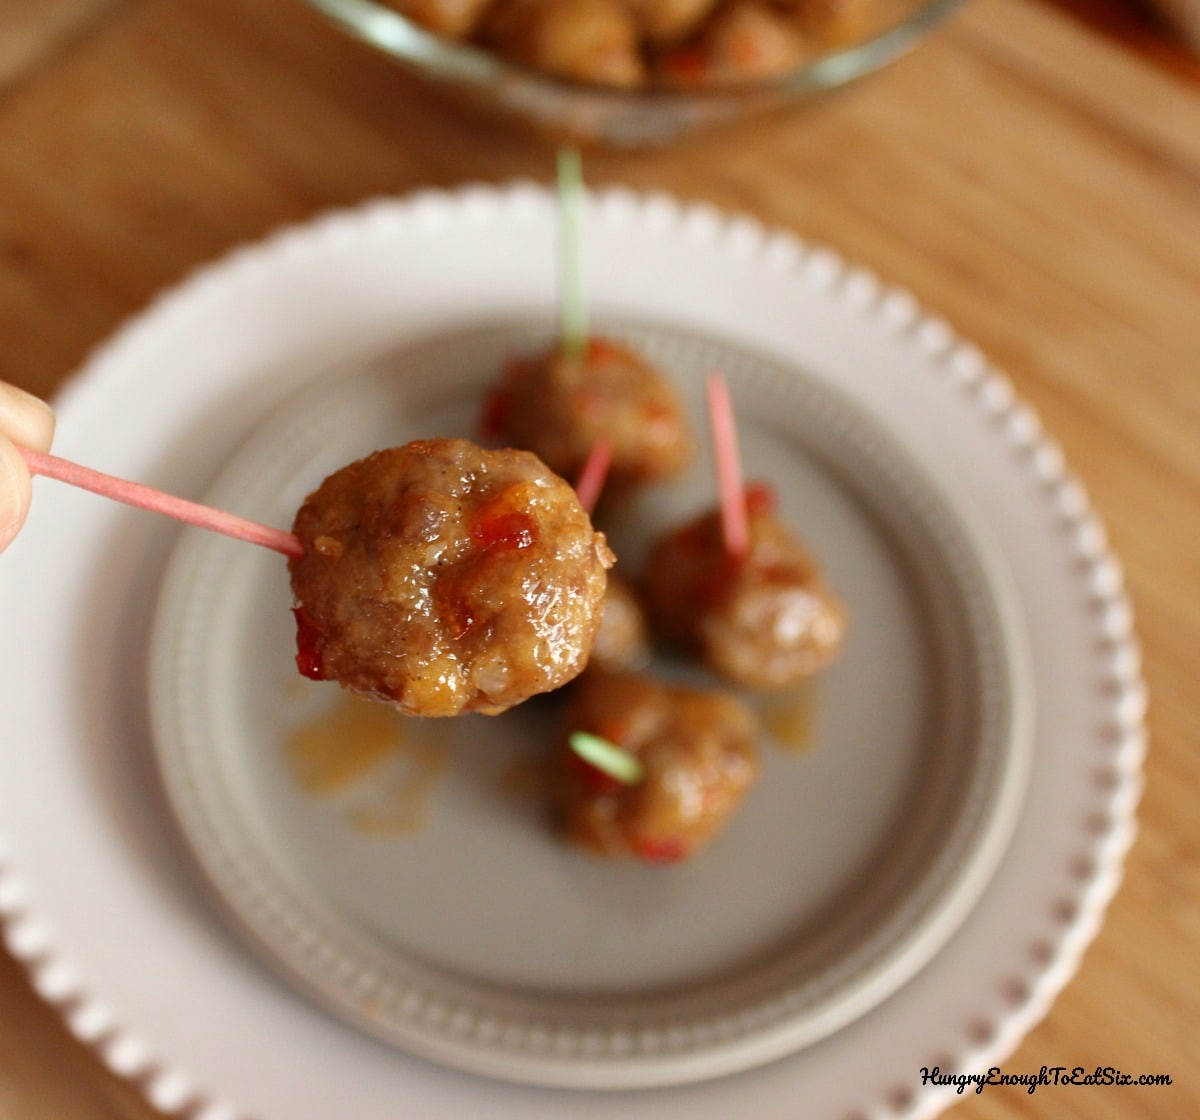 White plate with meatballs